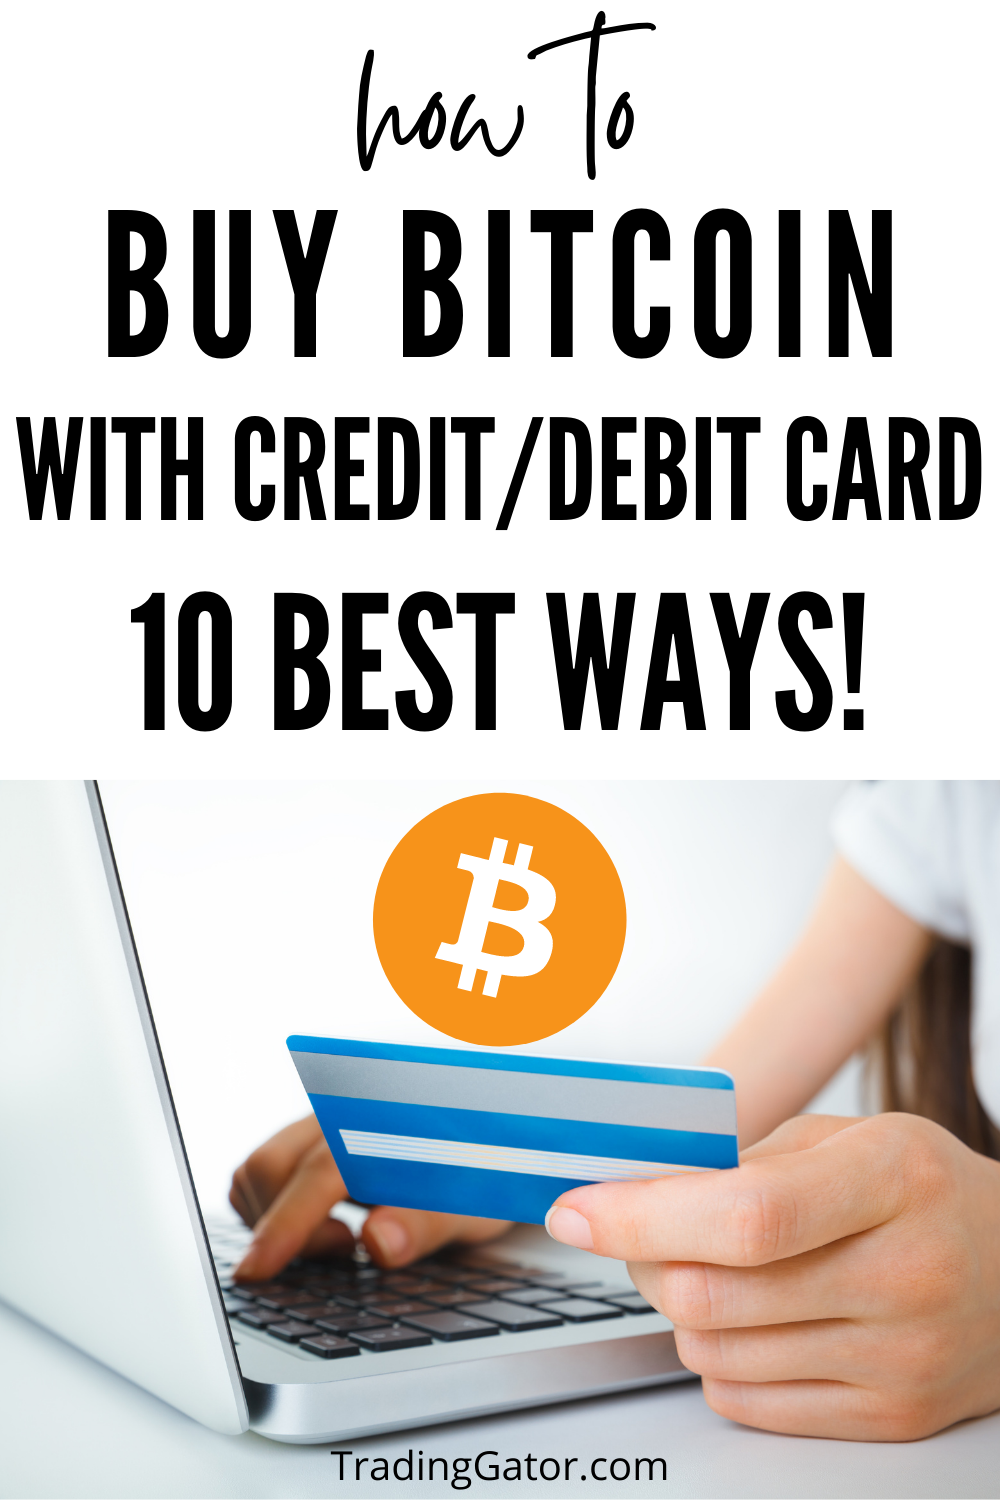 How To Buy Bitcoins With Credit Card Or Debit Card In 2020 10 Ways Buy Bitcoin Online Broker Debit Card